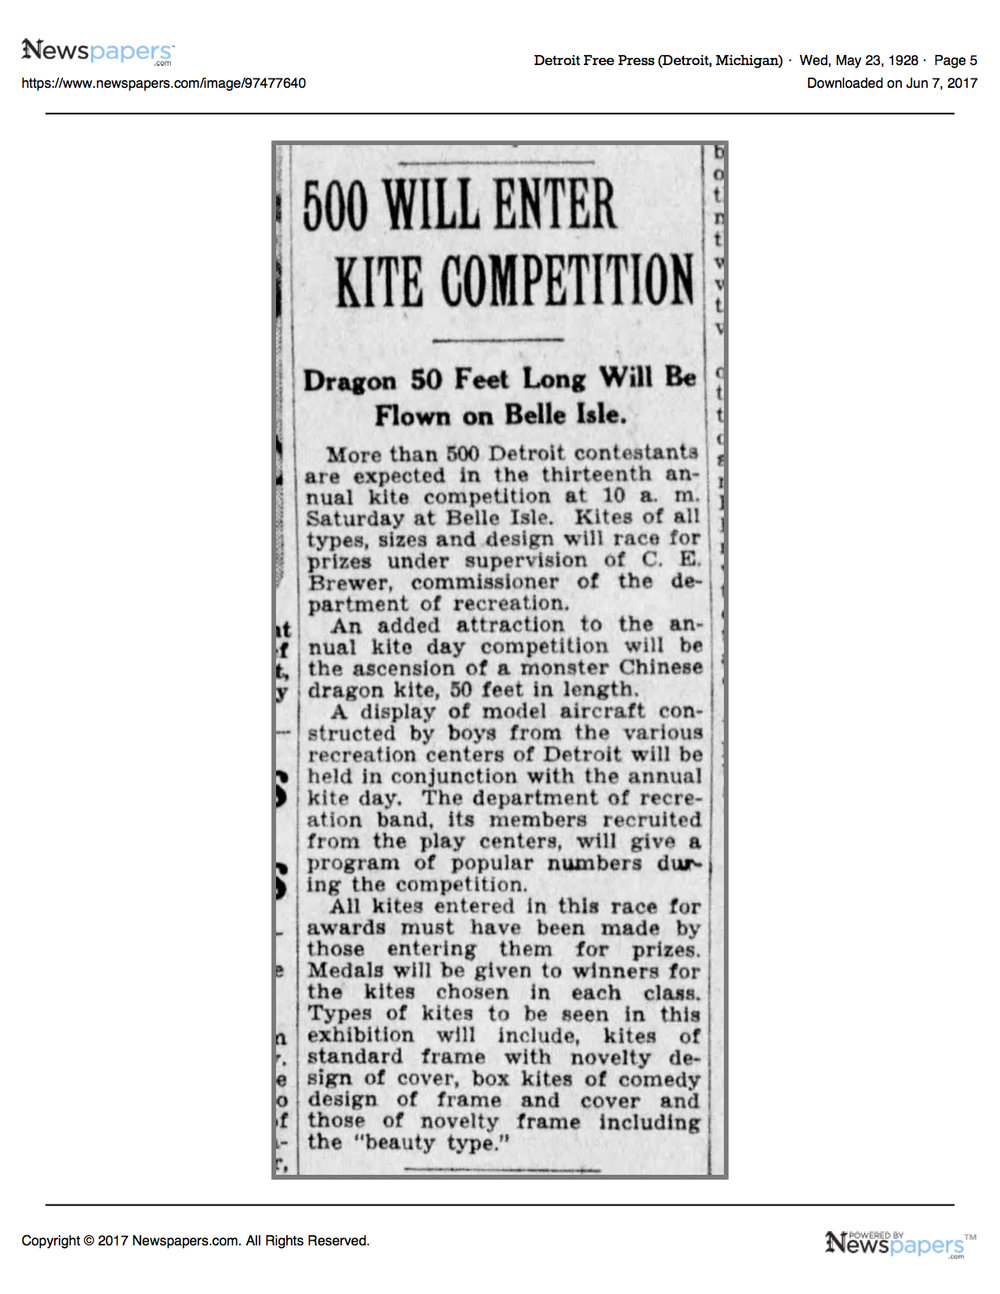 Detroit_Free_Press_Wed__May_23__1928_.jpg